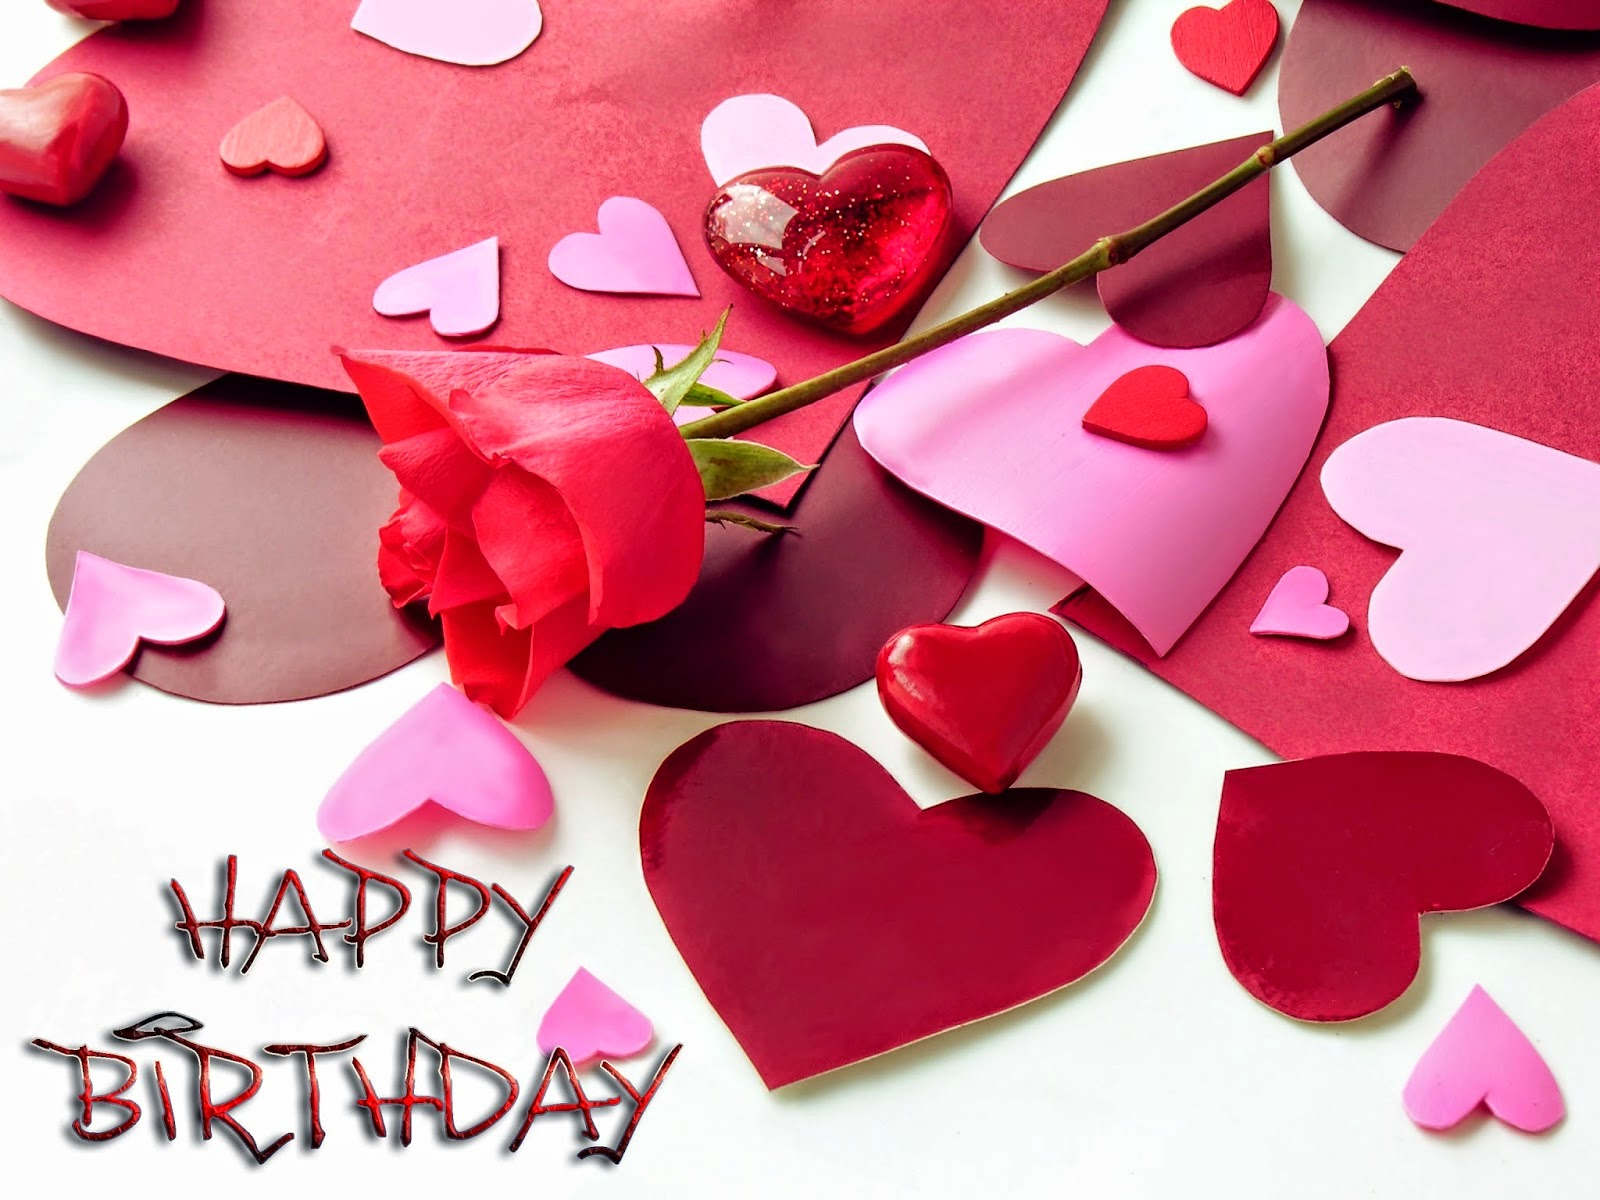 birthday wishes card for lover ; f11dc43e89a548cb9ed6c362faf1efaa